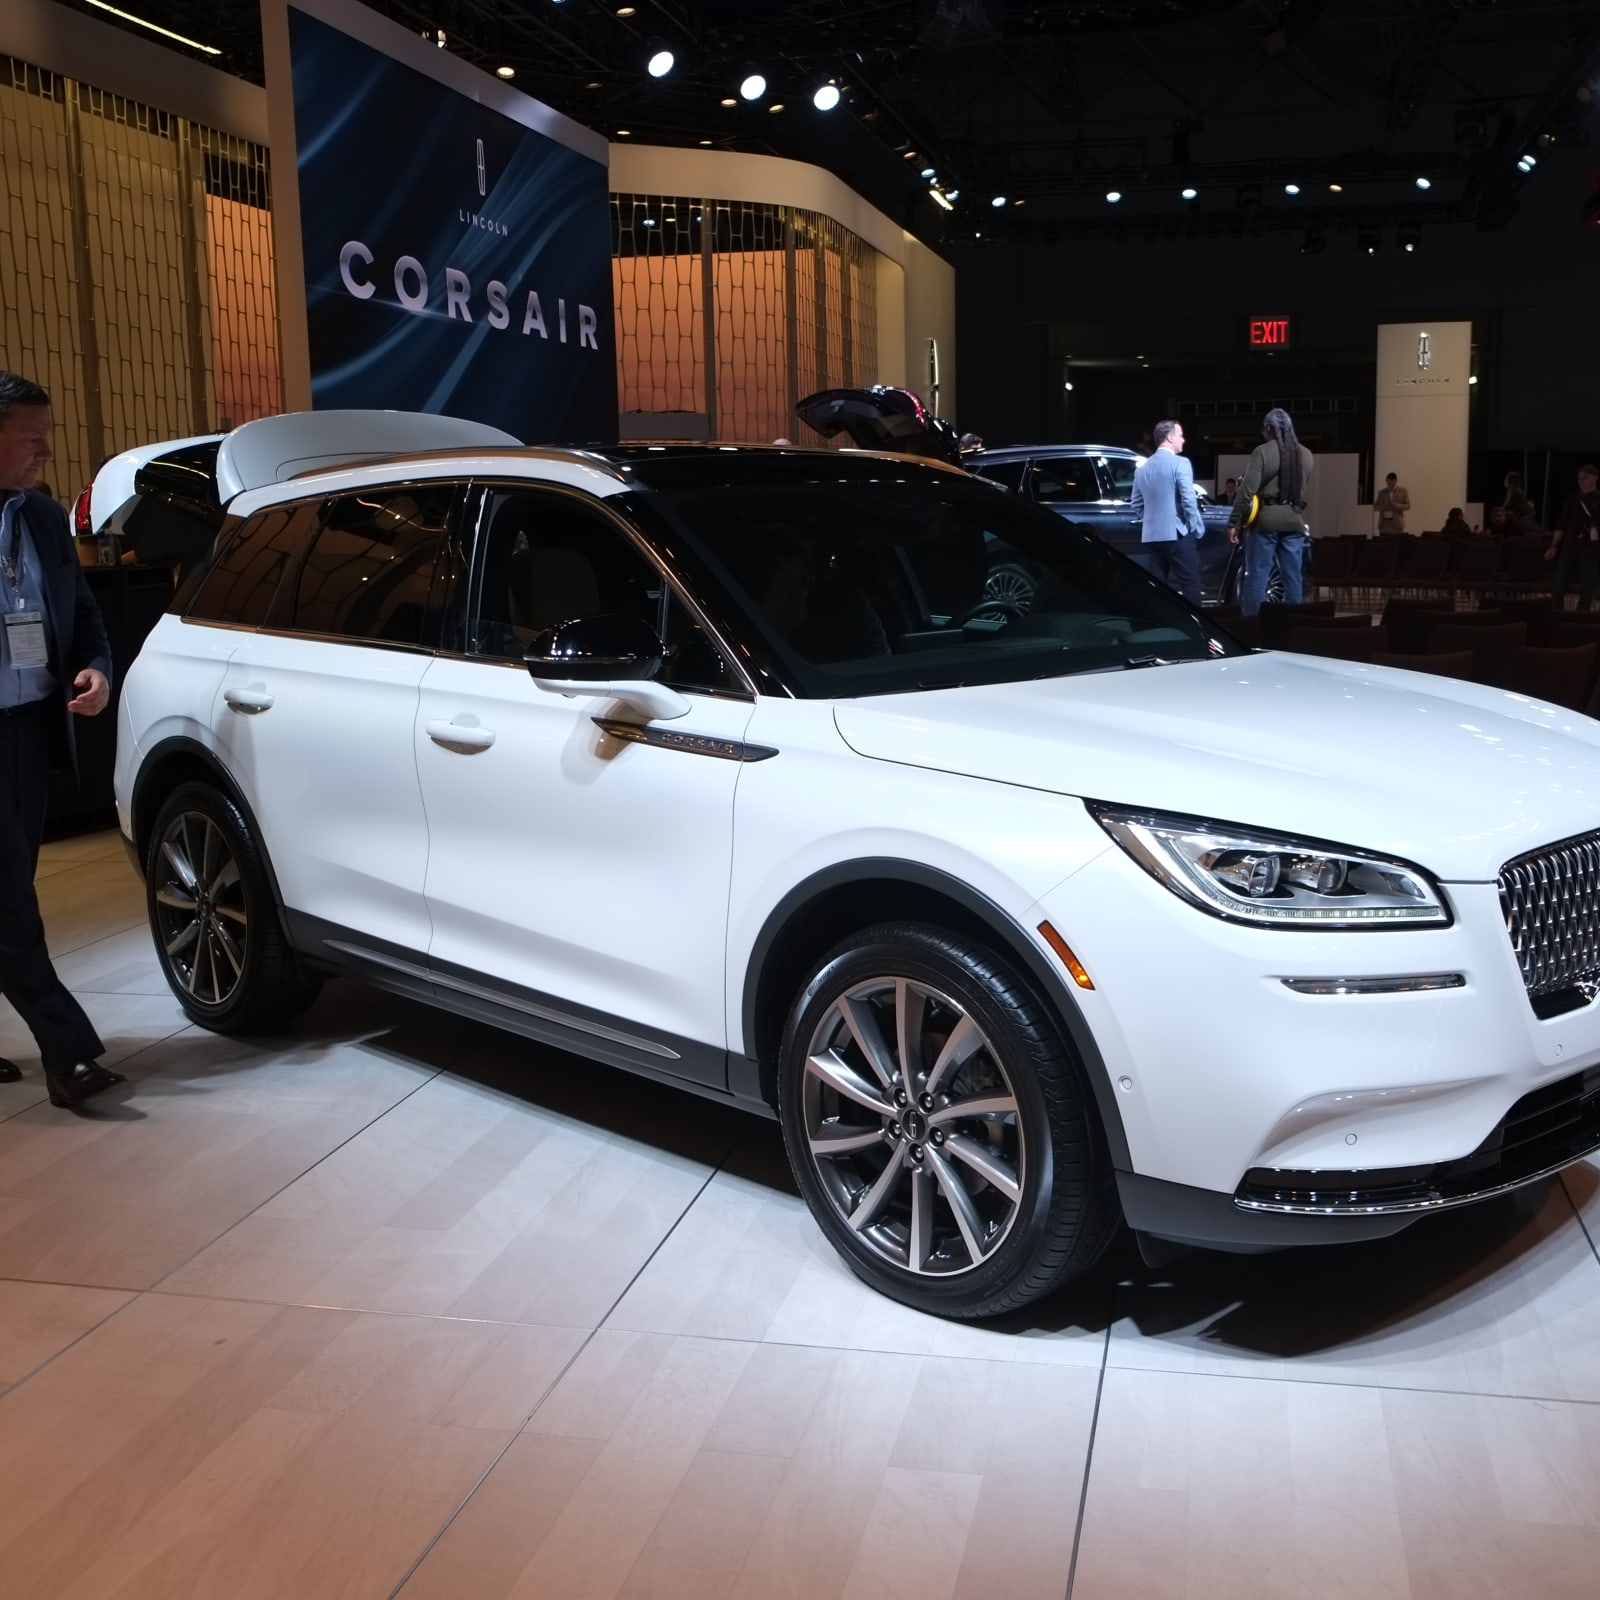 Best Home And Auto Insurance Bundles 2020 Auto Insurance Profiles for Some of The Hottest Vehicles of 2020